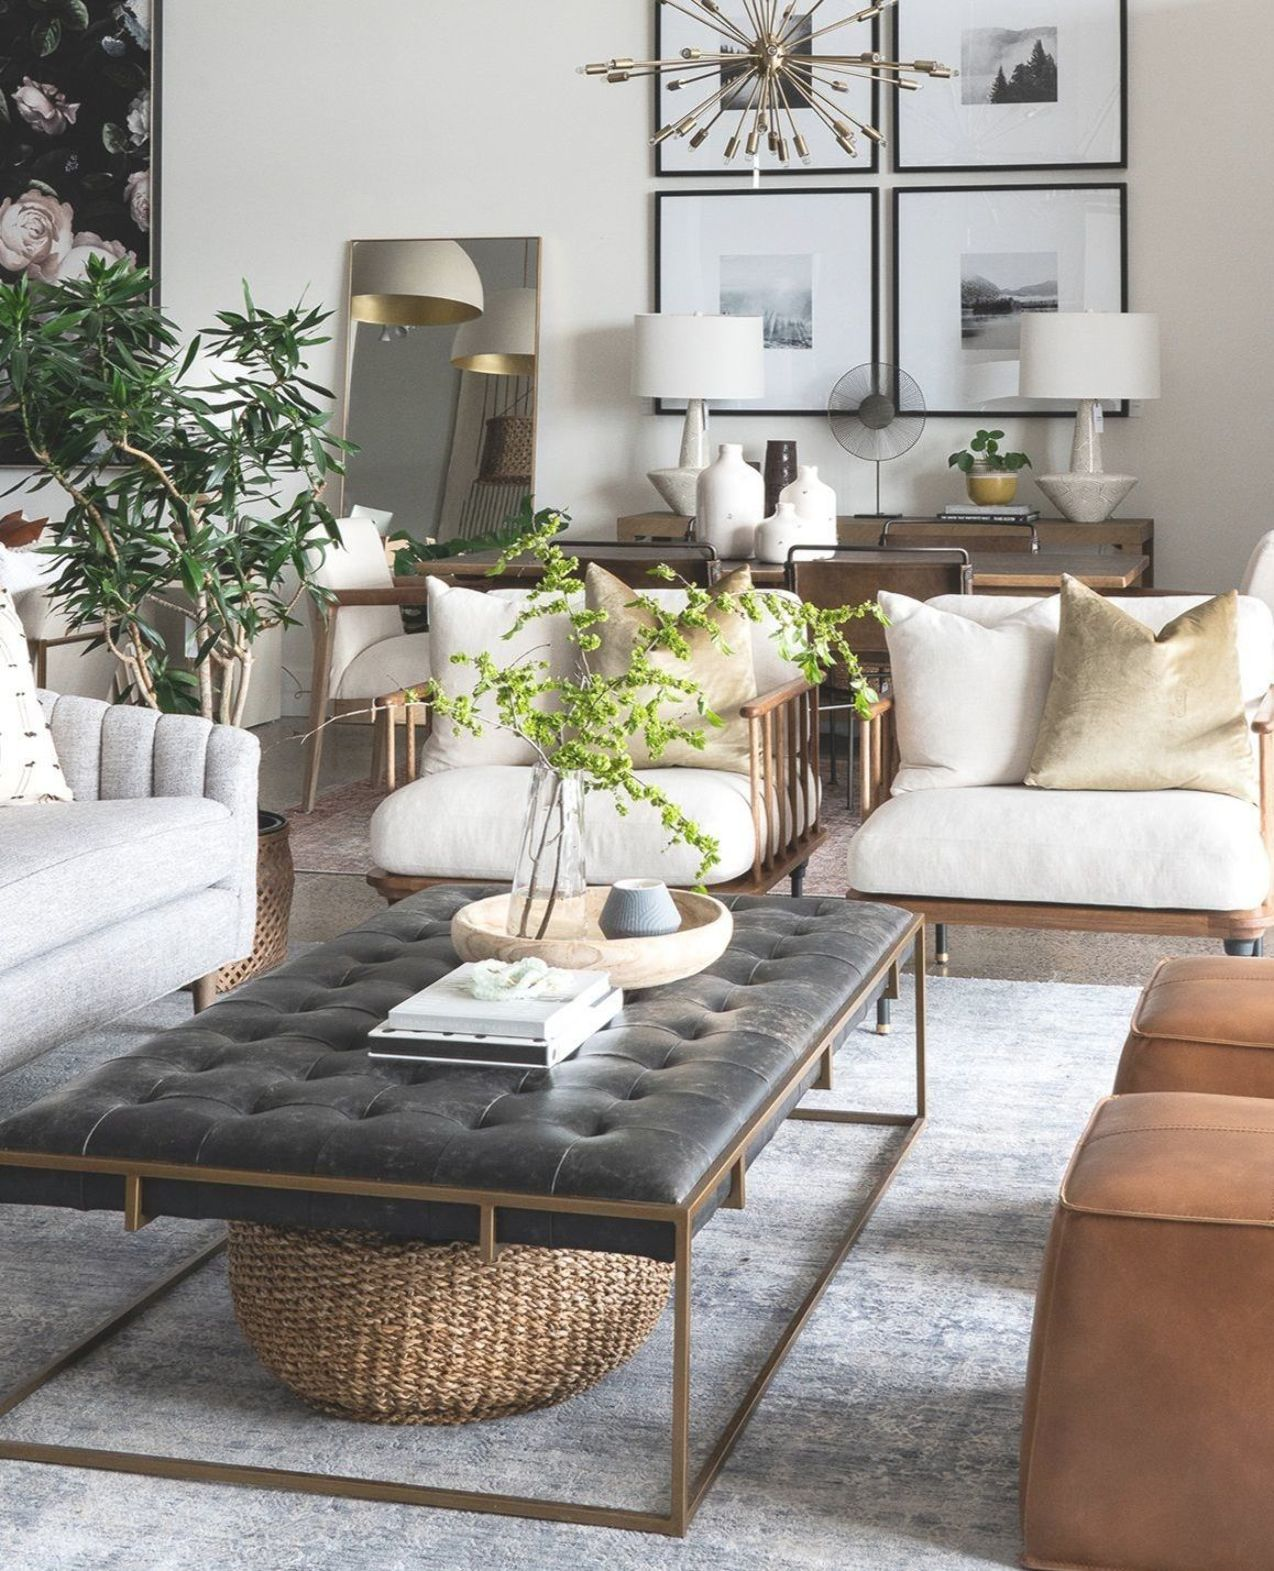 Our Top Five Tips For Styling A Coffee Table Leclair Decor Contemporary Living Room Design Living Room Coffee Table Leclair Decor [ 1571 x 1274 Pixel ]